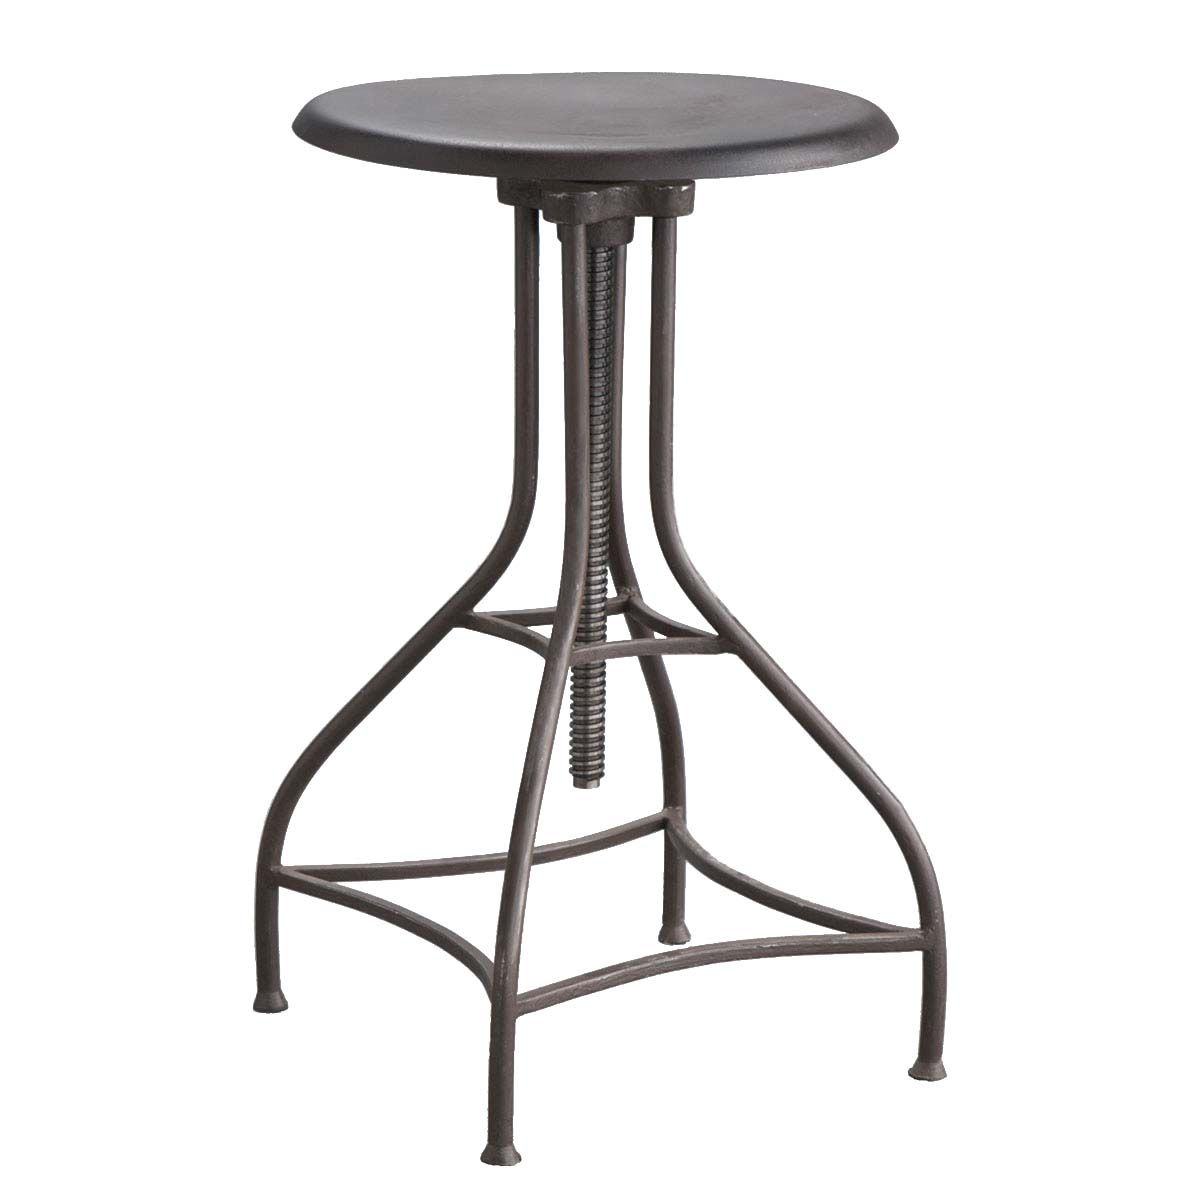 Antiqued Iron Stool > This iron stool has an Industrial Era edge that contributes a cool, contemporary style adjustable to fit any counter or bar.  Shop > http://ss1.us/a/541YtVAP